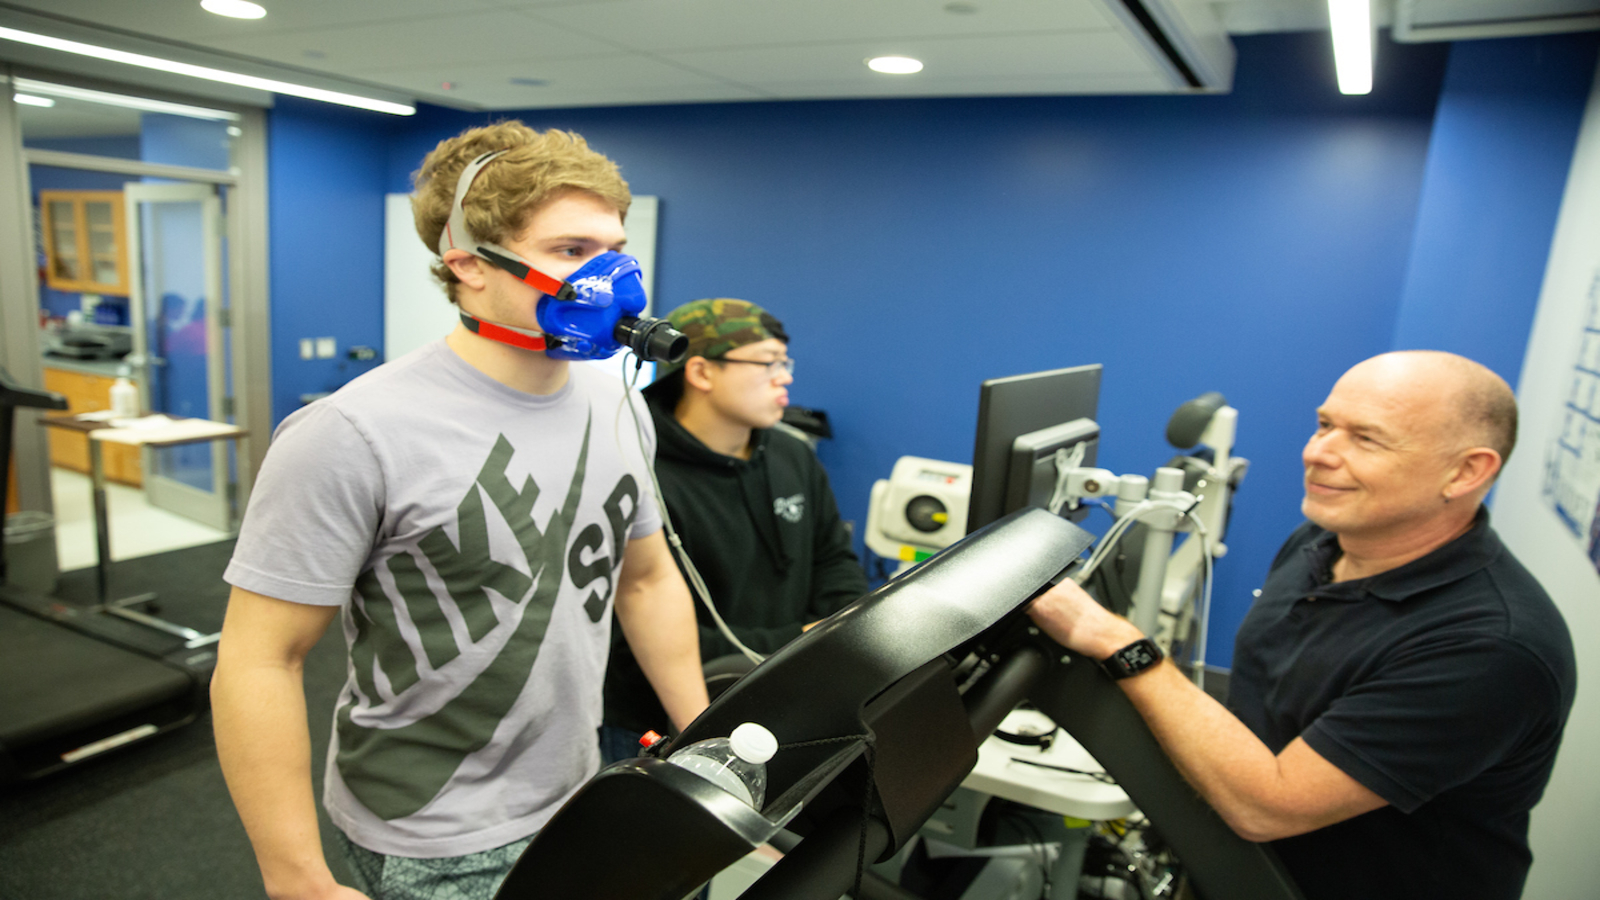 a student walks on a treadmill while wearing gear monitoring his breathing